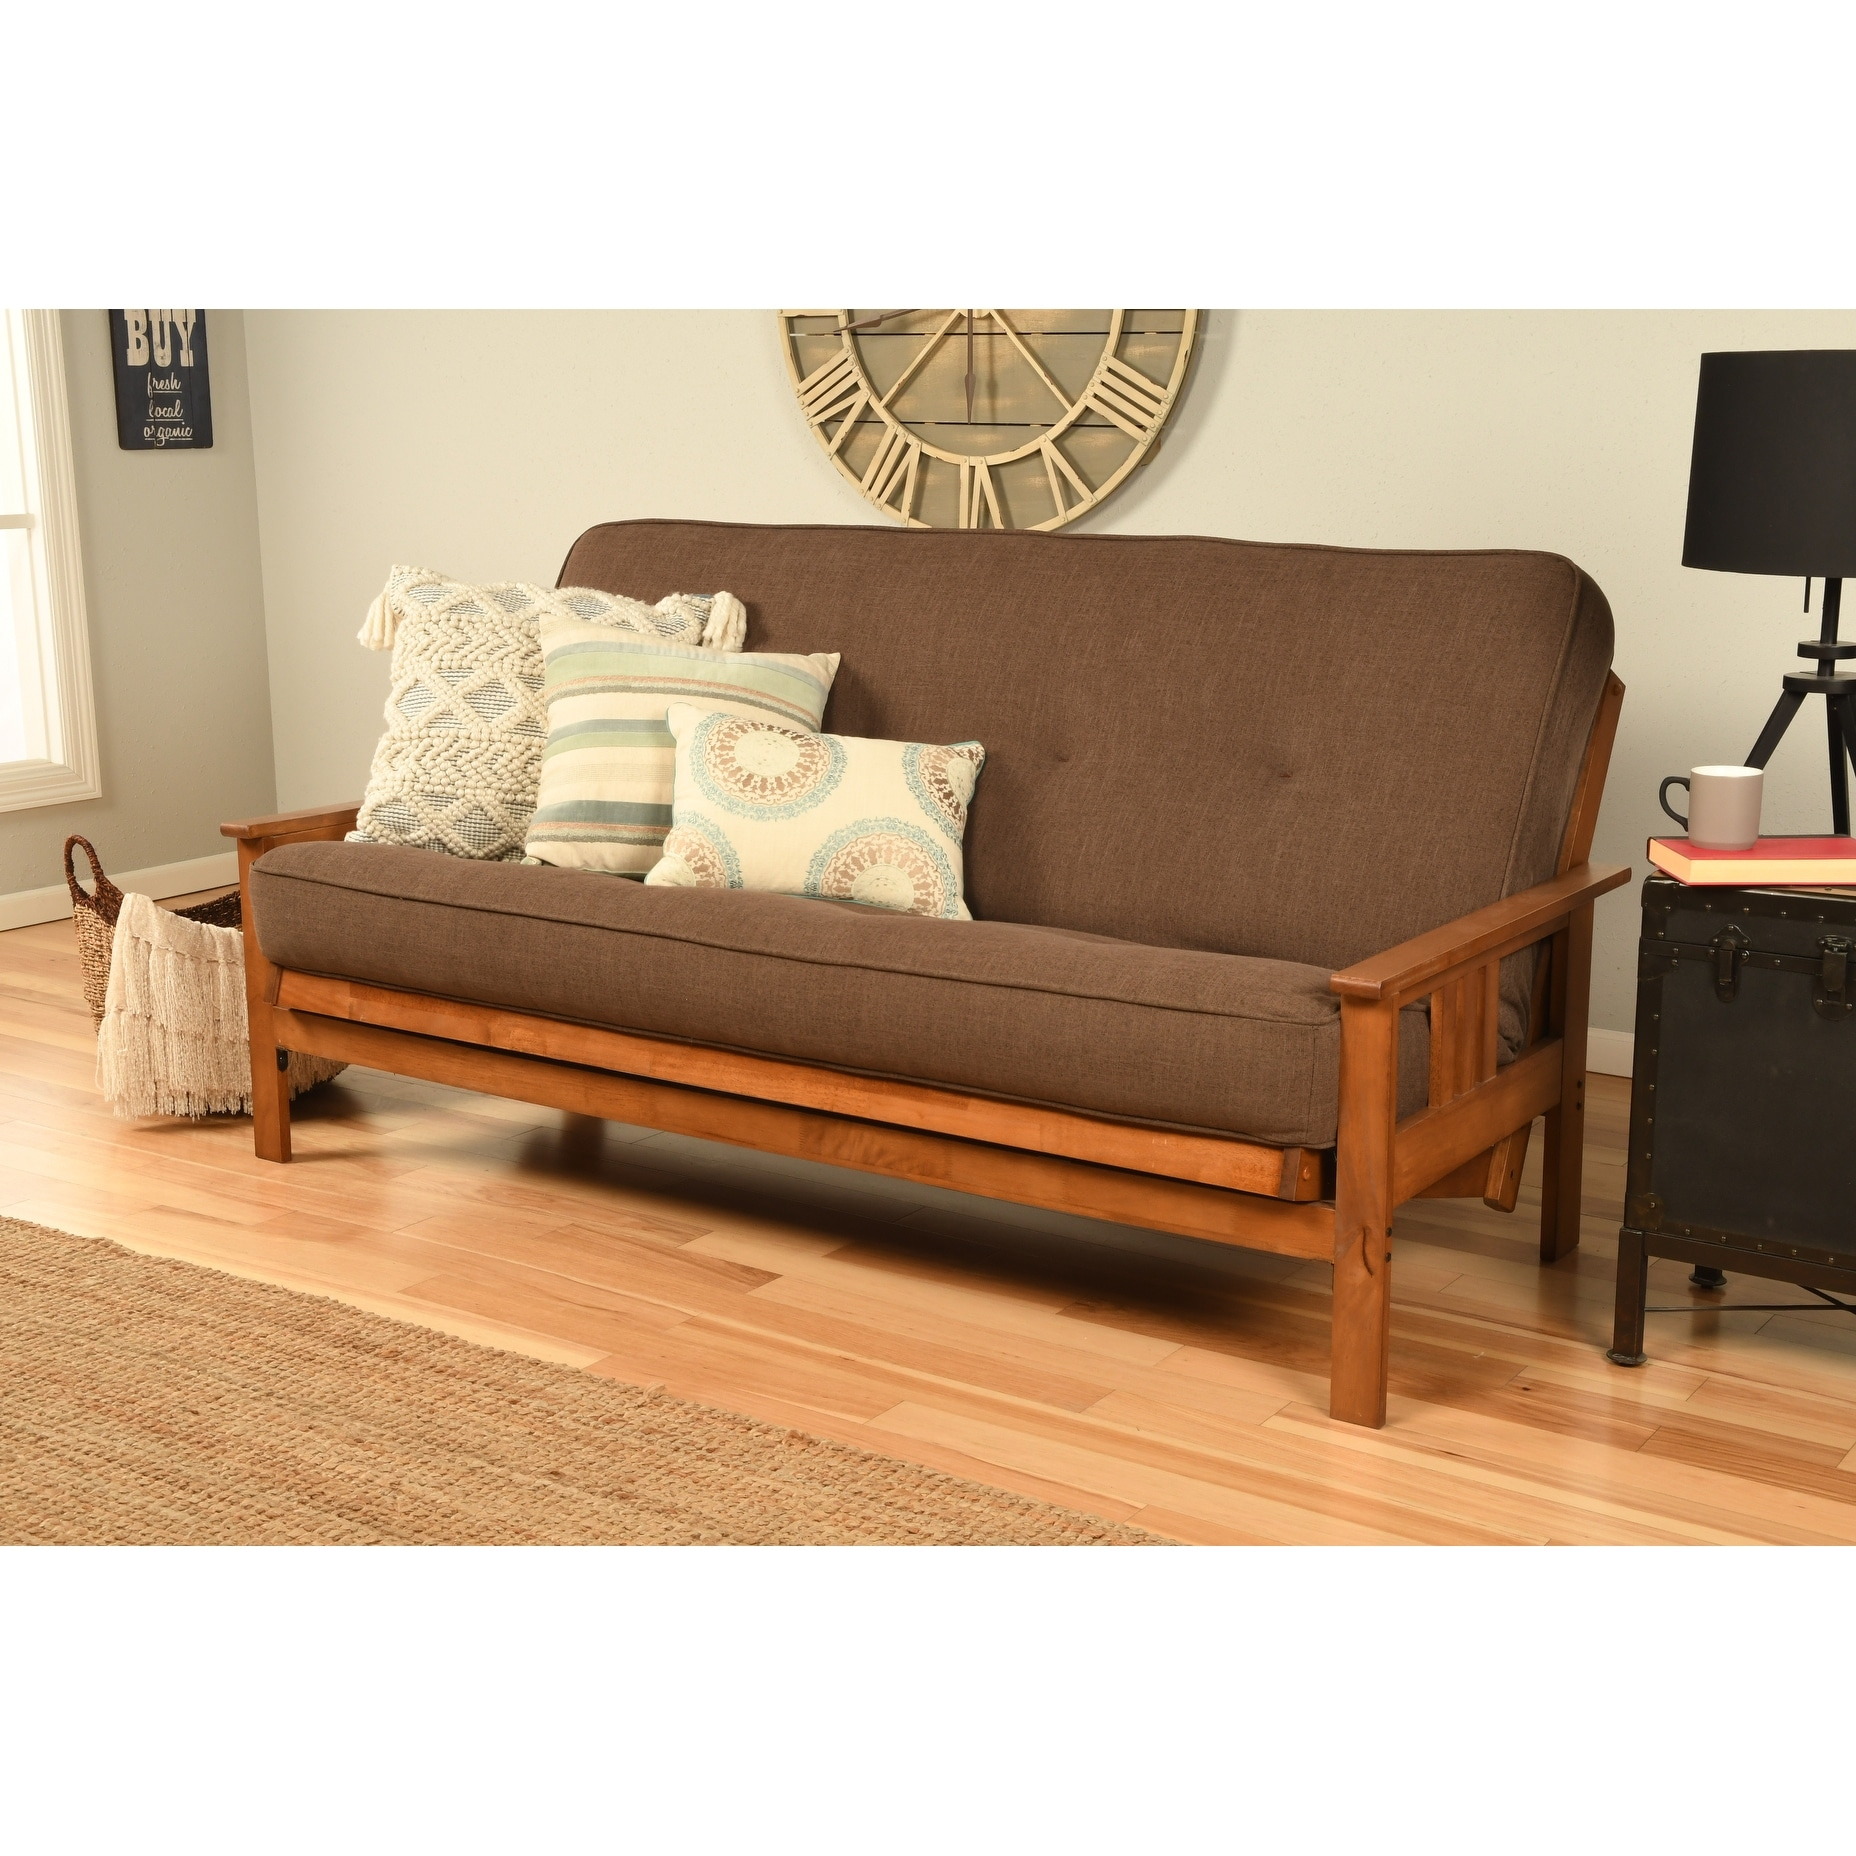 Picture of: Porch Den Kern Full Size Futon Frame And Mattress Set On Sale Overstock 7734907